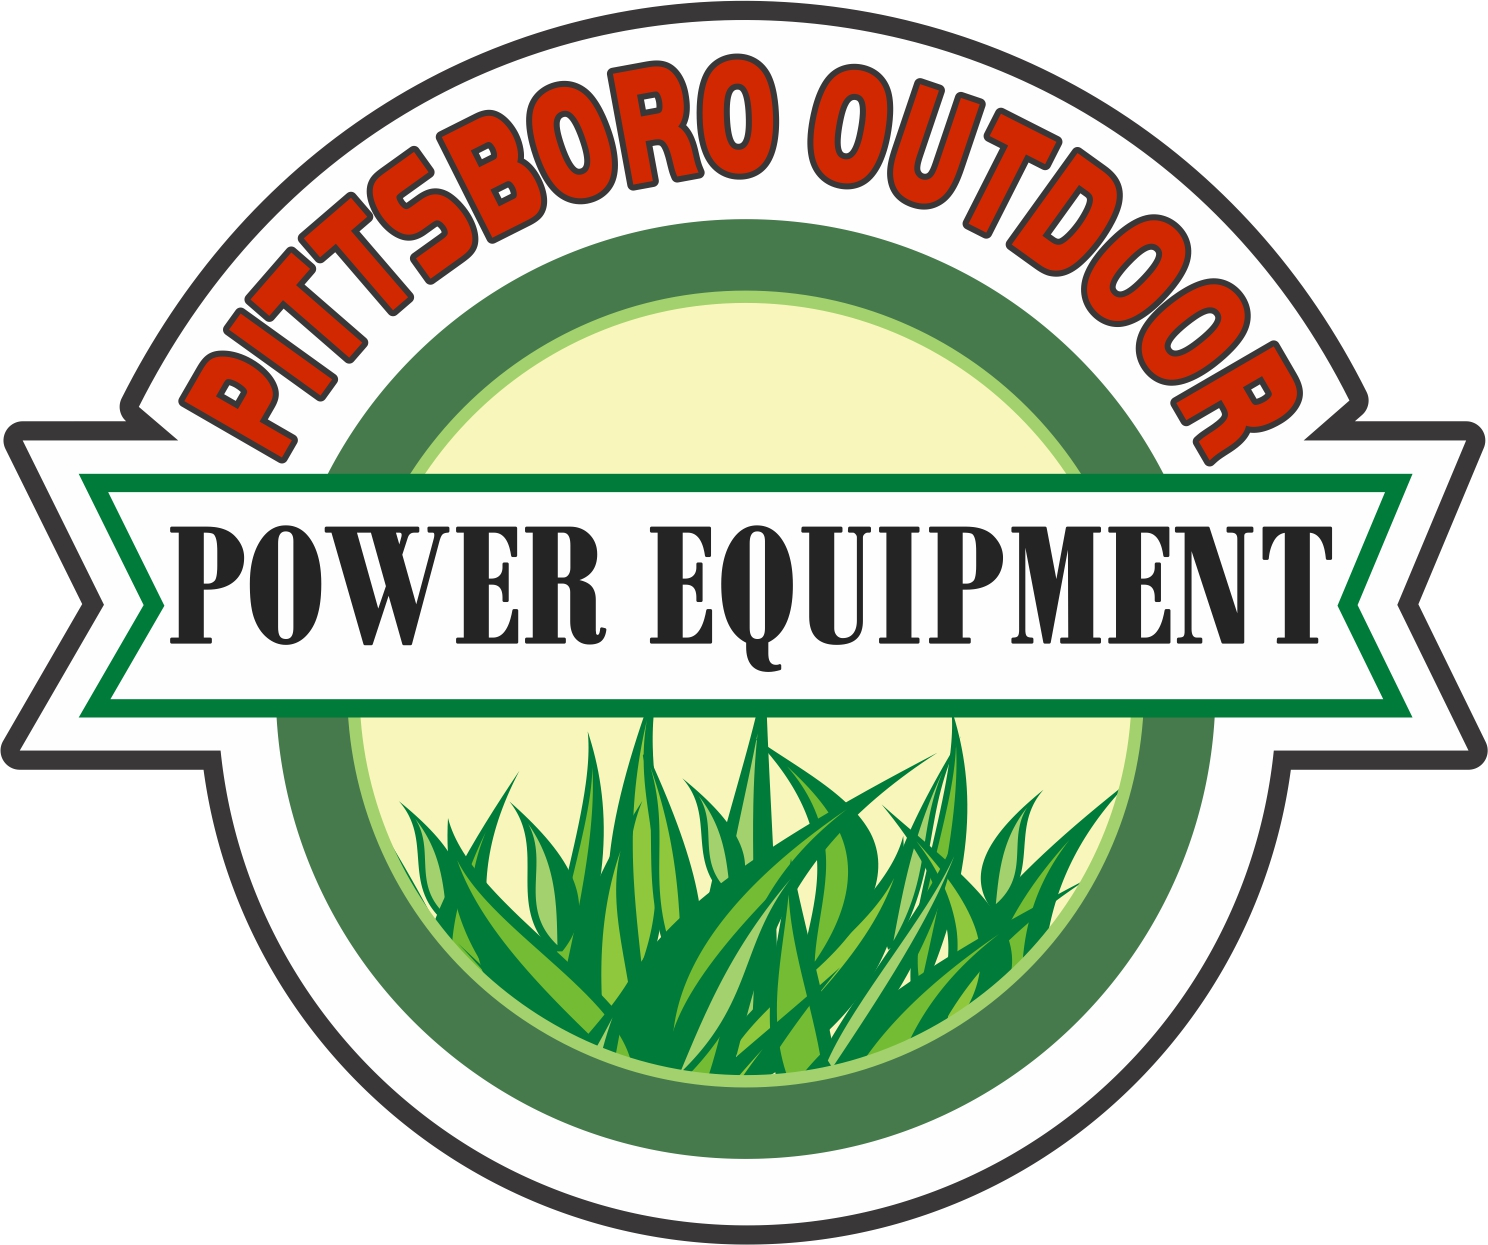 Pittsboro Outdoor Power Equipment